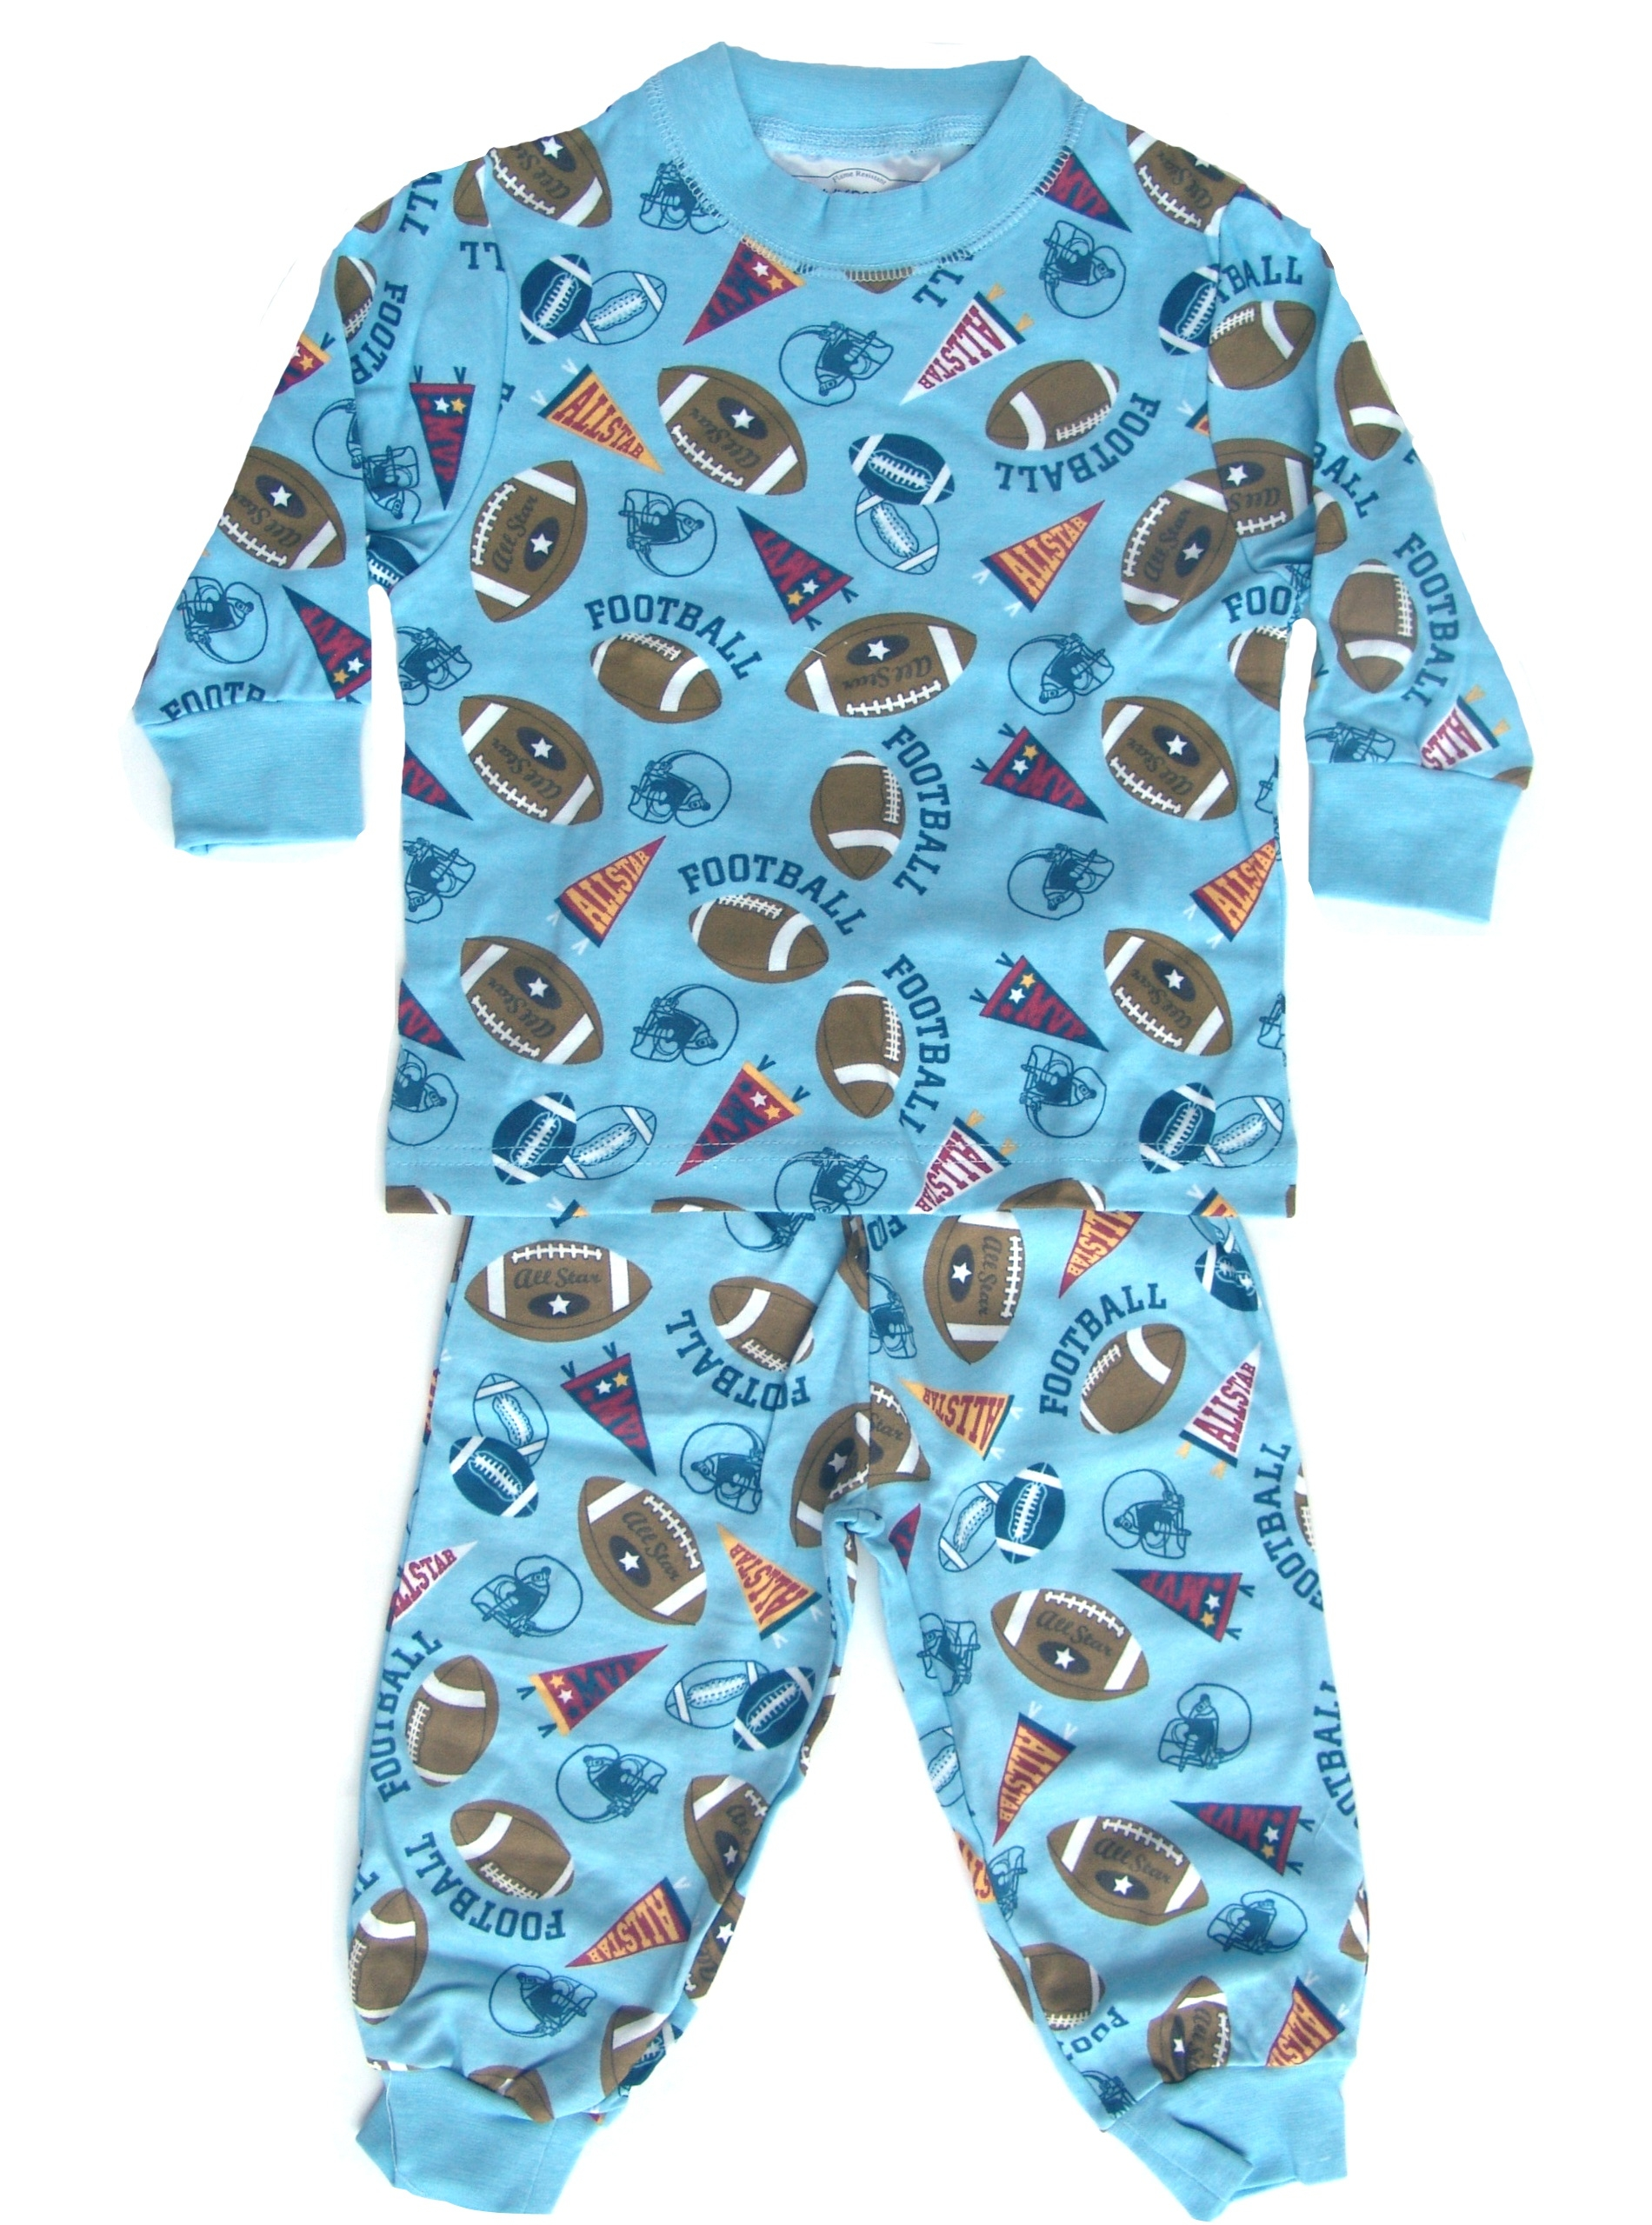 Pajamas clipart pajama. New gallery digital collection